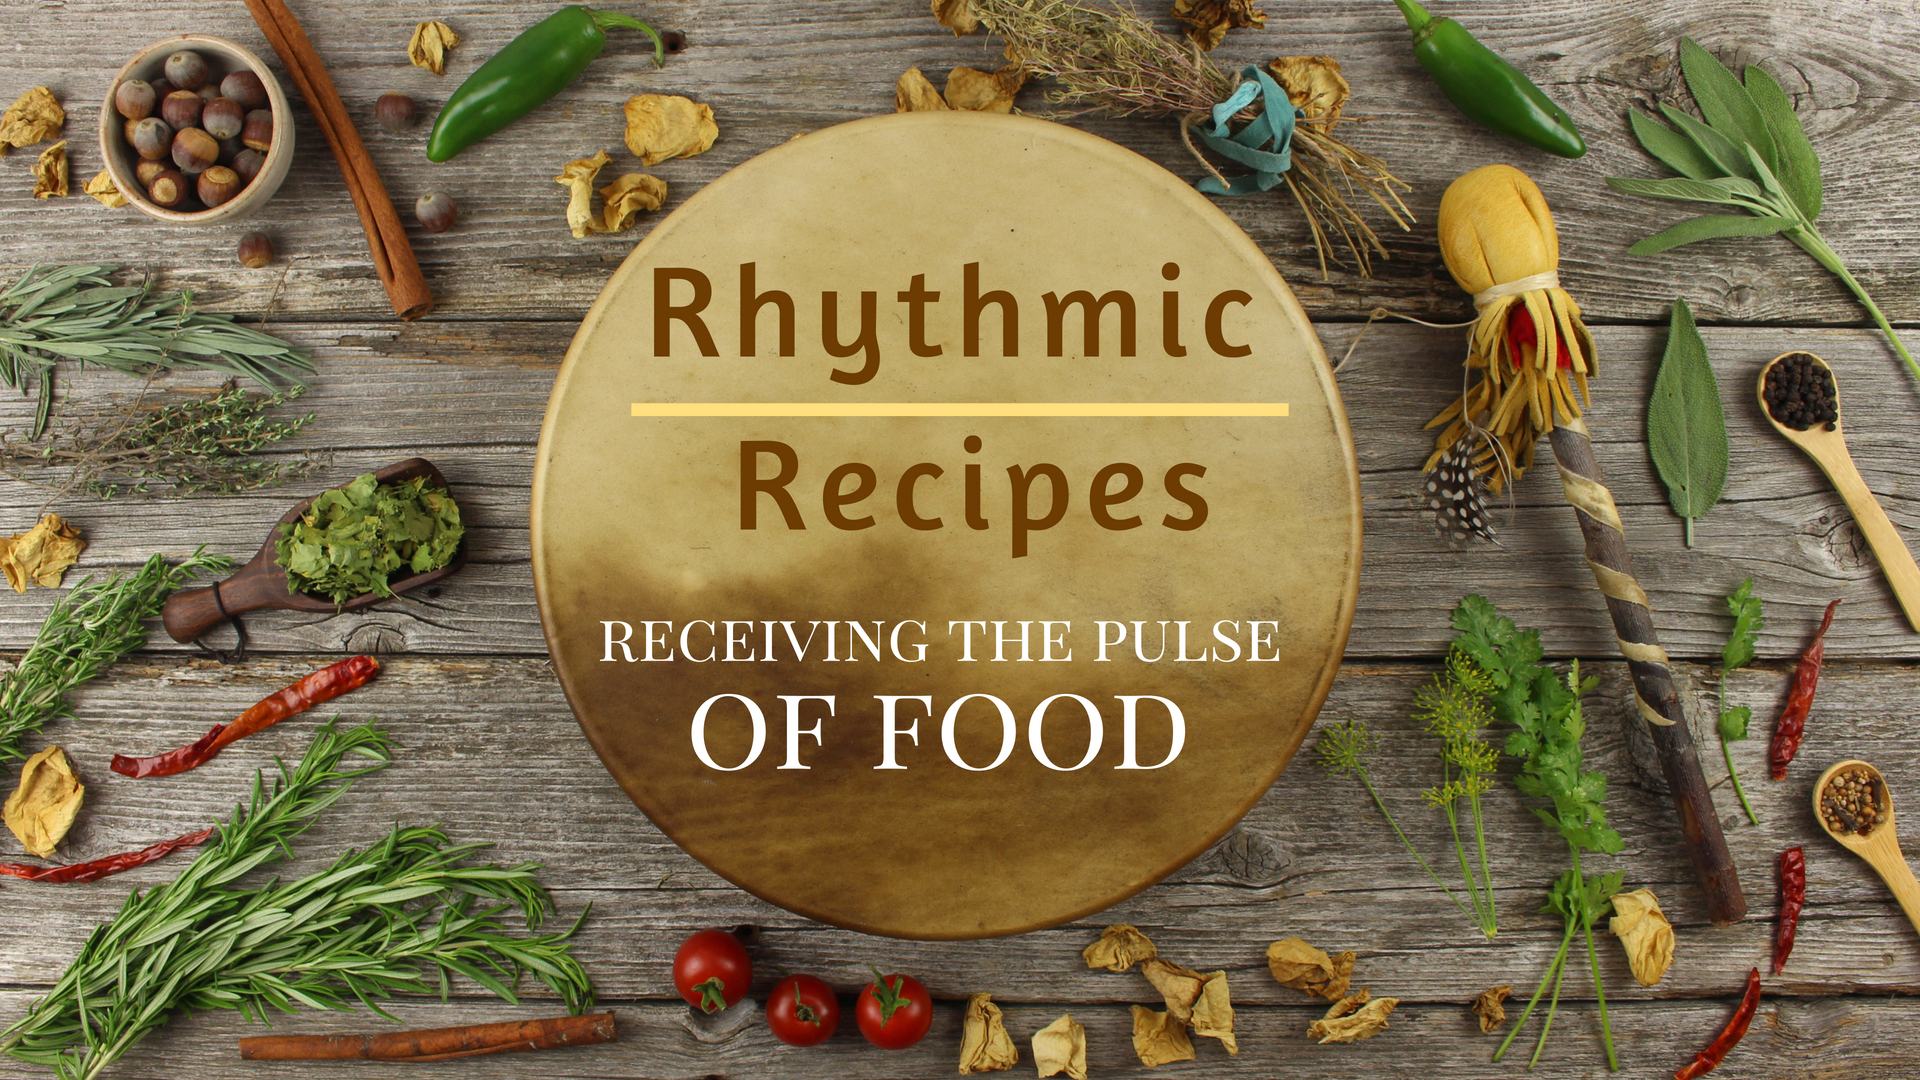 Rhythmic Recipes - Receiving The Pulse Of Foodthis gathering will focus on ways to connect and prepare foods to receive their healing properties and life force energiesCOMING 2019!